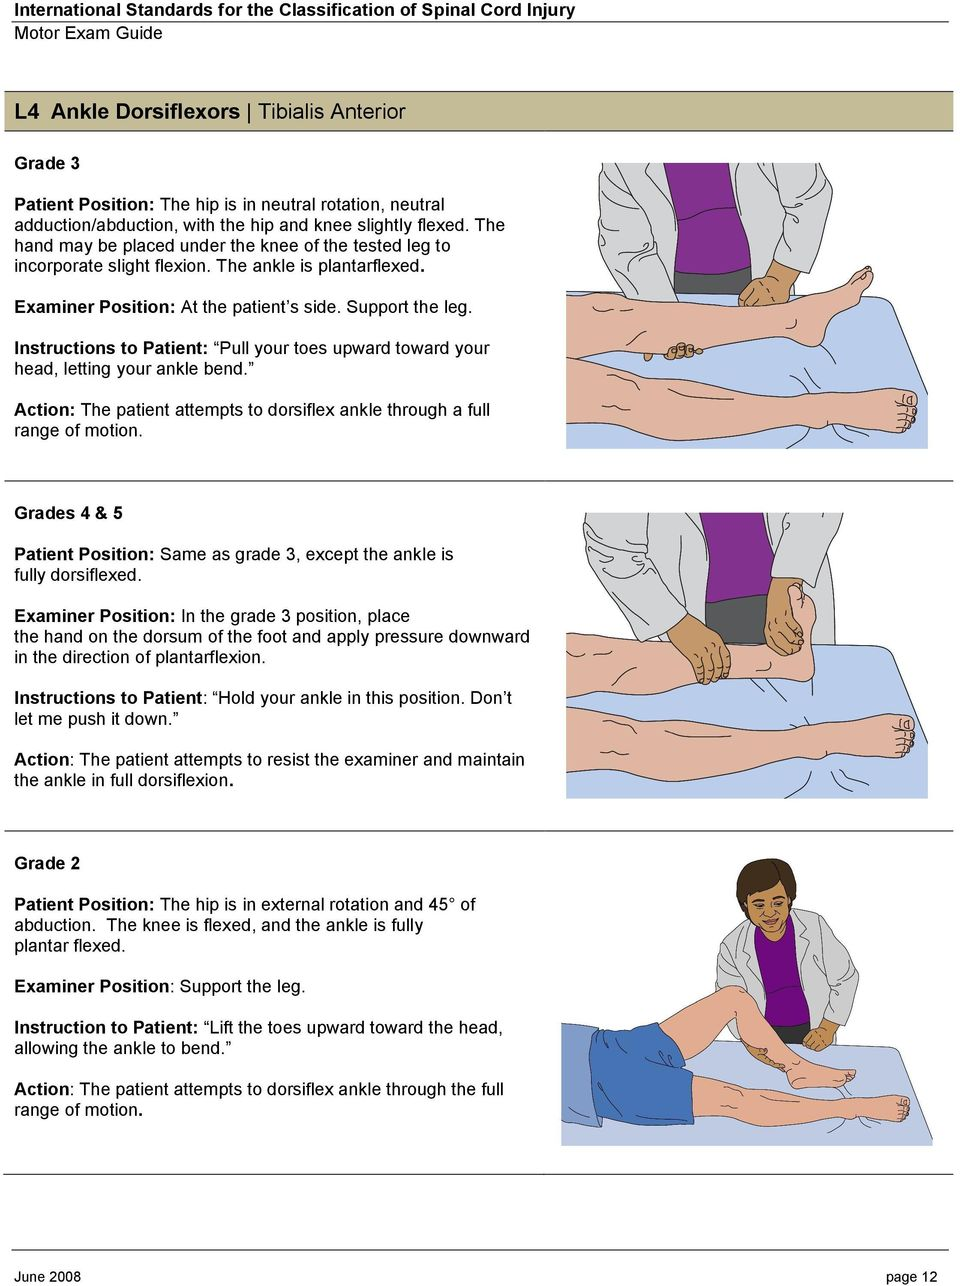 Instructions to Patient: Pull your toes upward toward your head, letting your ankle bend. Action: The patient attempts to dorsiflex ankle through a full range of motion.